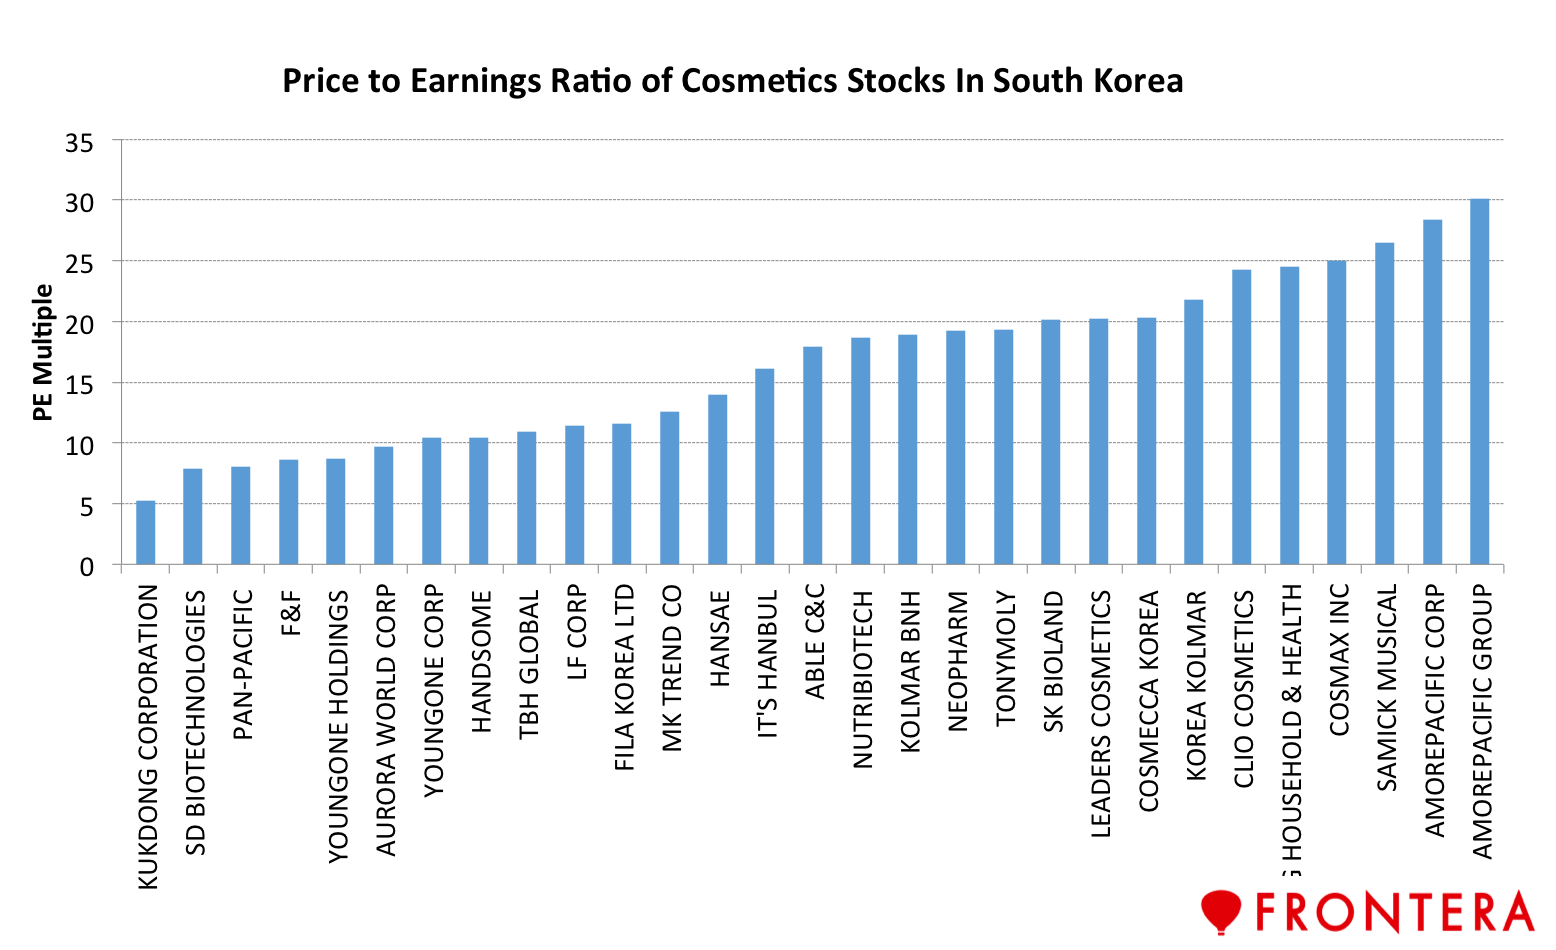 5 Stocks To Ride On The South Korean 'K Wave' Frontera  Frontera